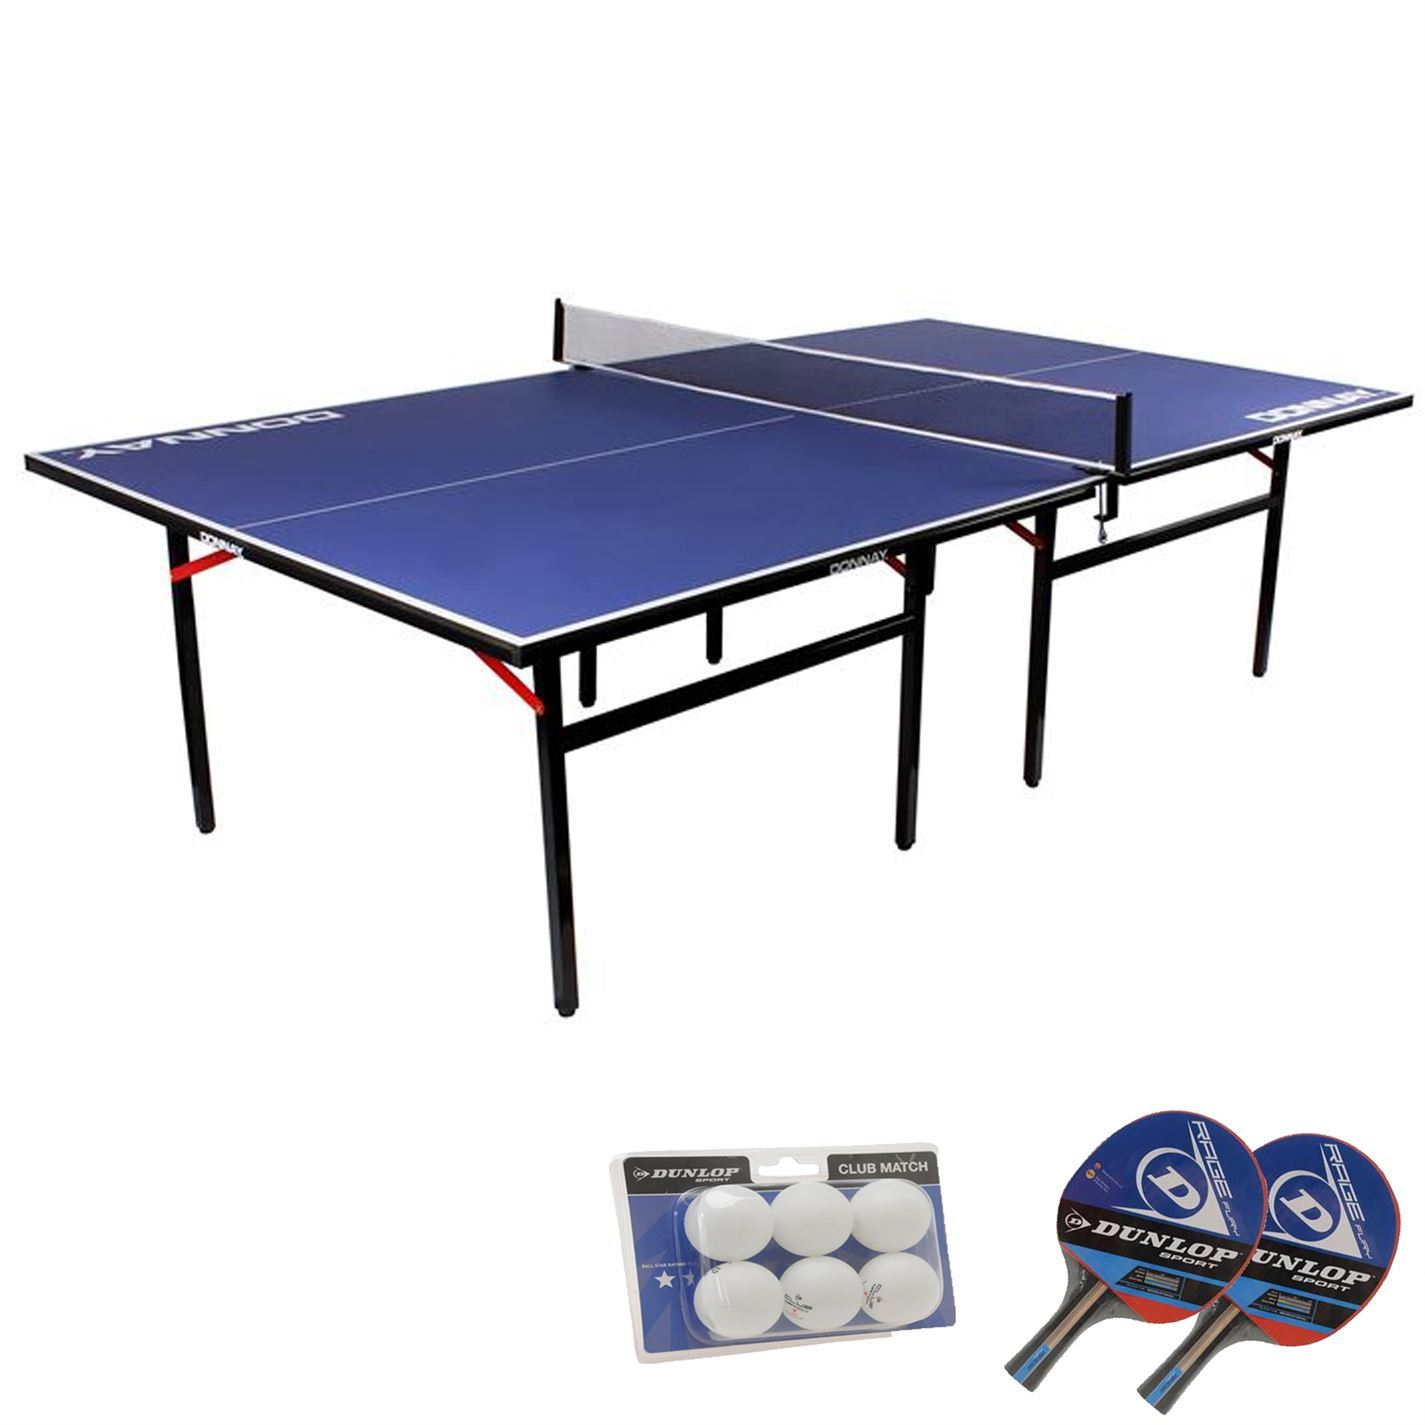 Donnay indoor compact tennis table full size ping pong for 52 table view